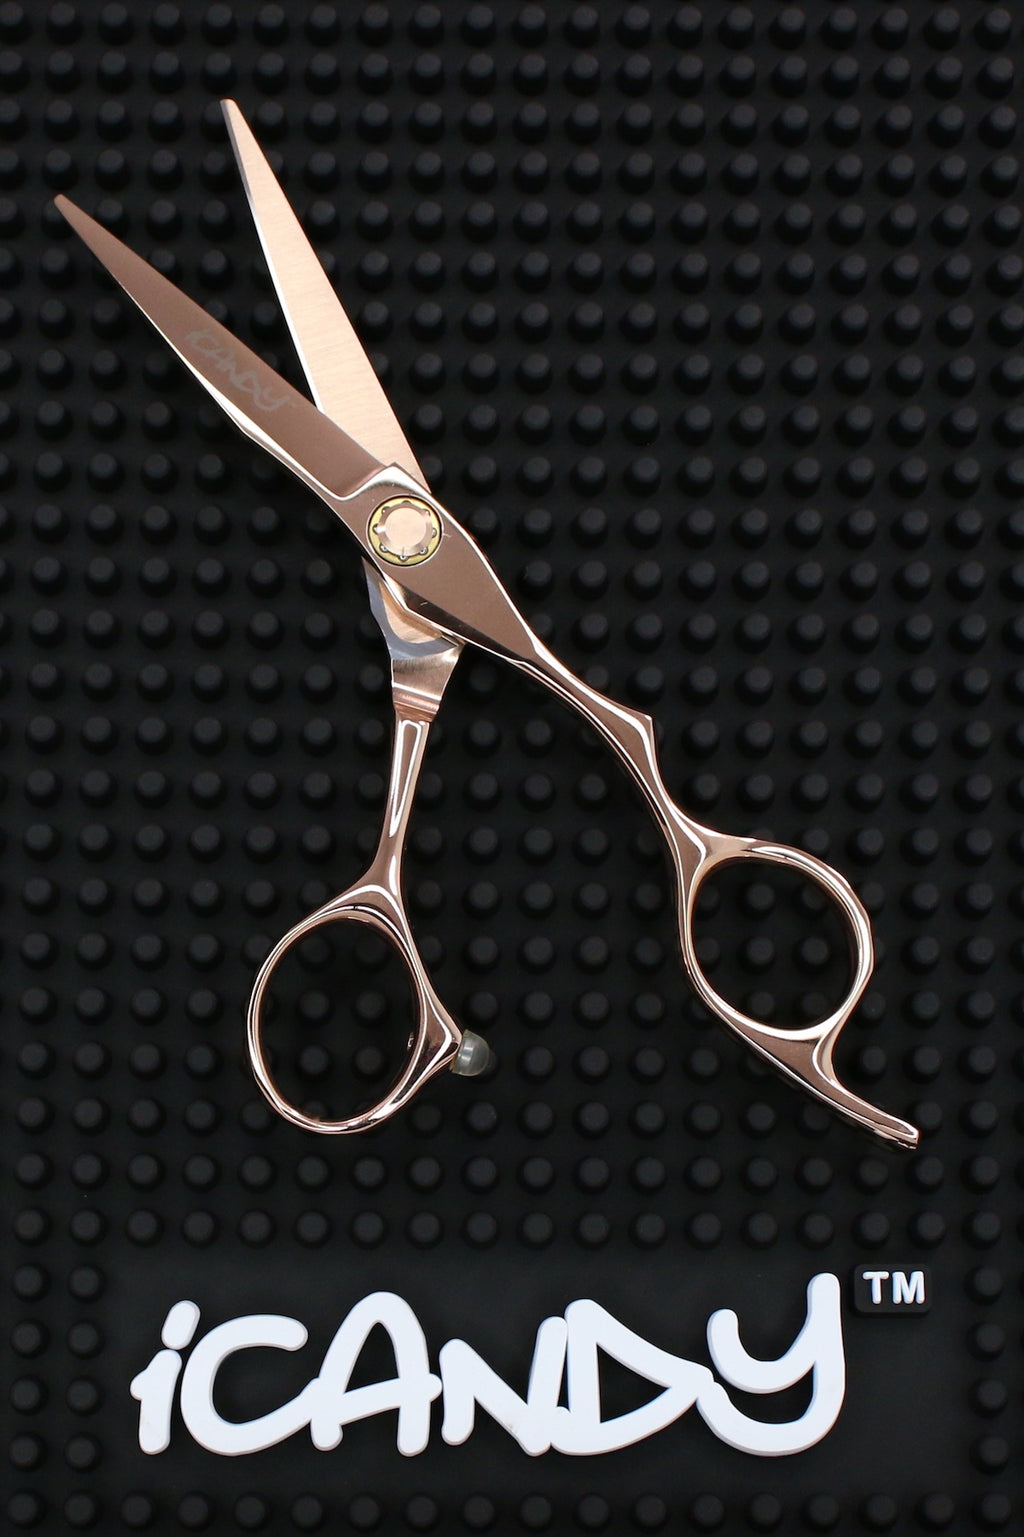 iCandy LUXE Pro Rose Gold Hairdressing Scissor  (5.5 inch) Limited Edition! - iCandy Scissors